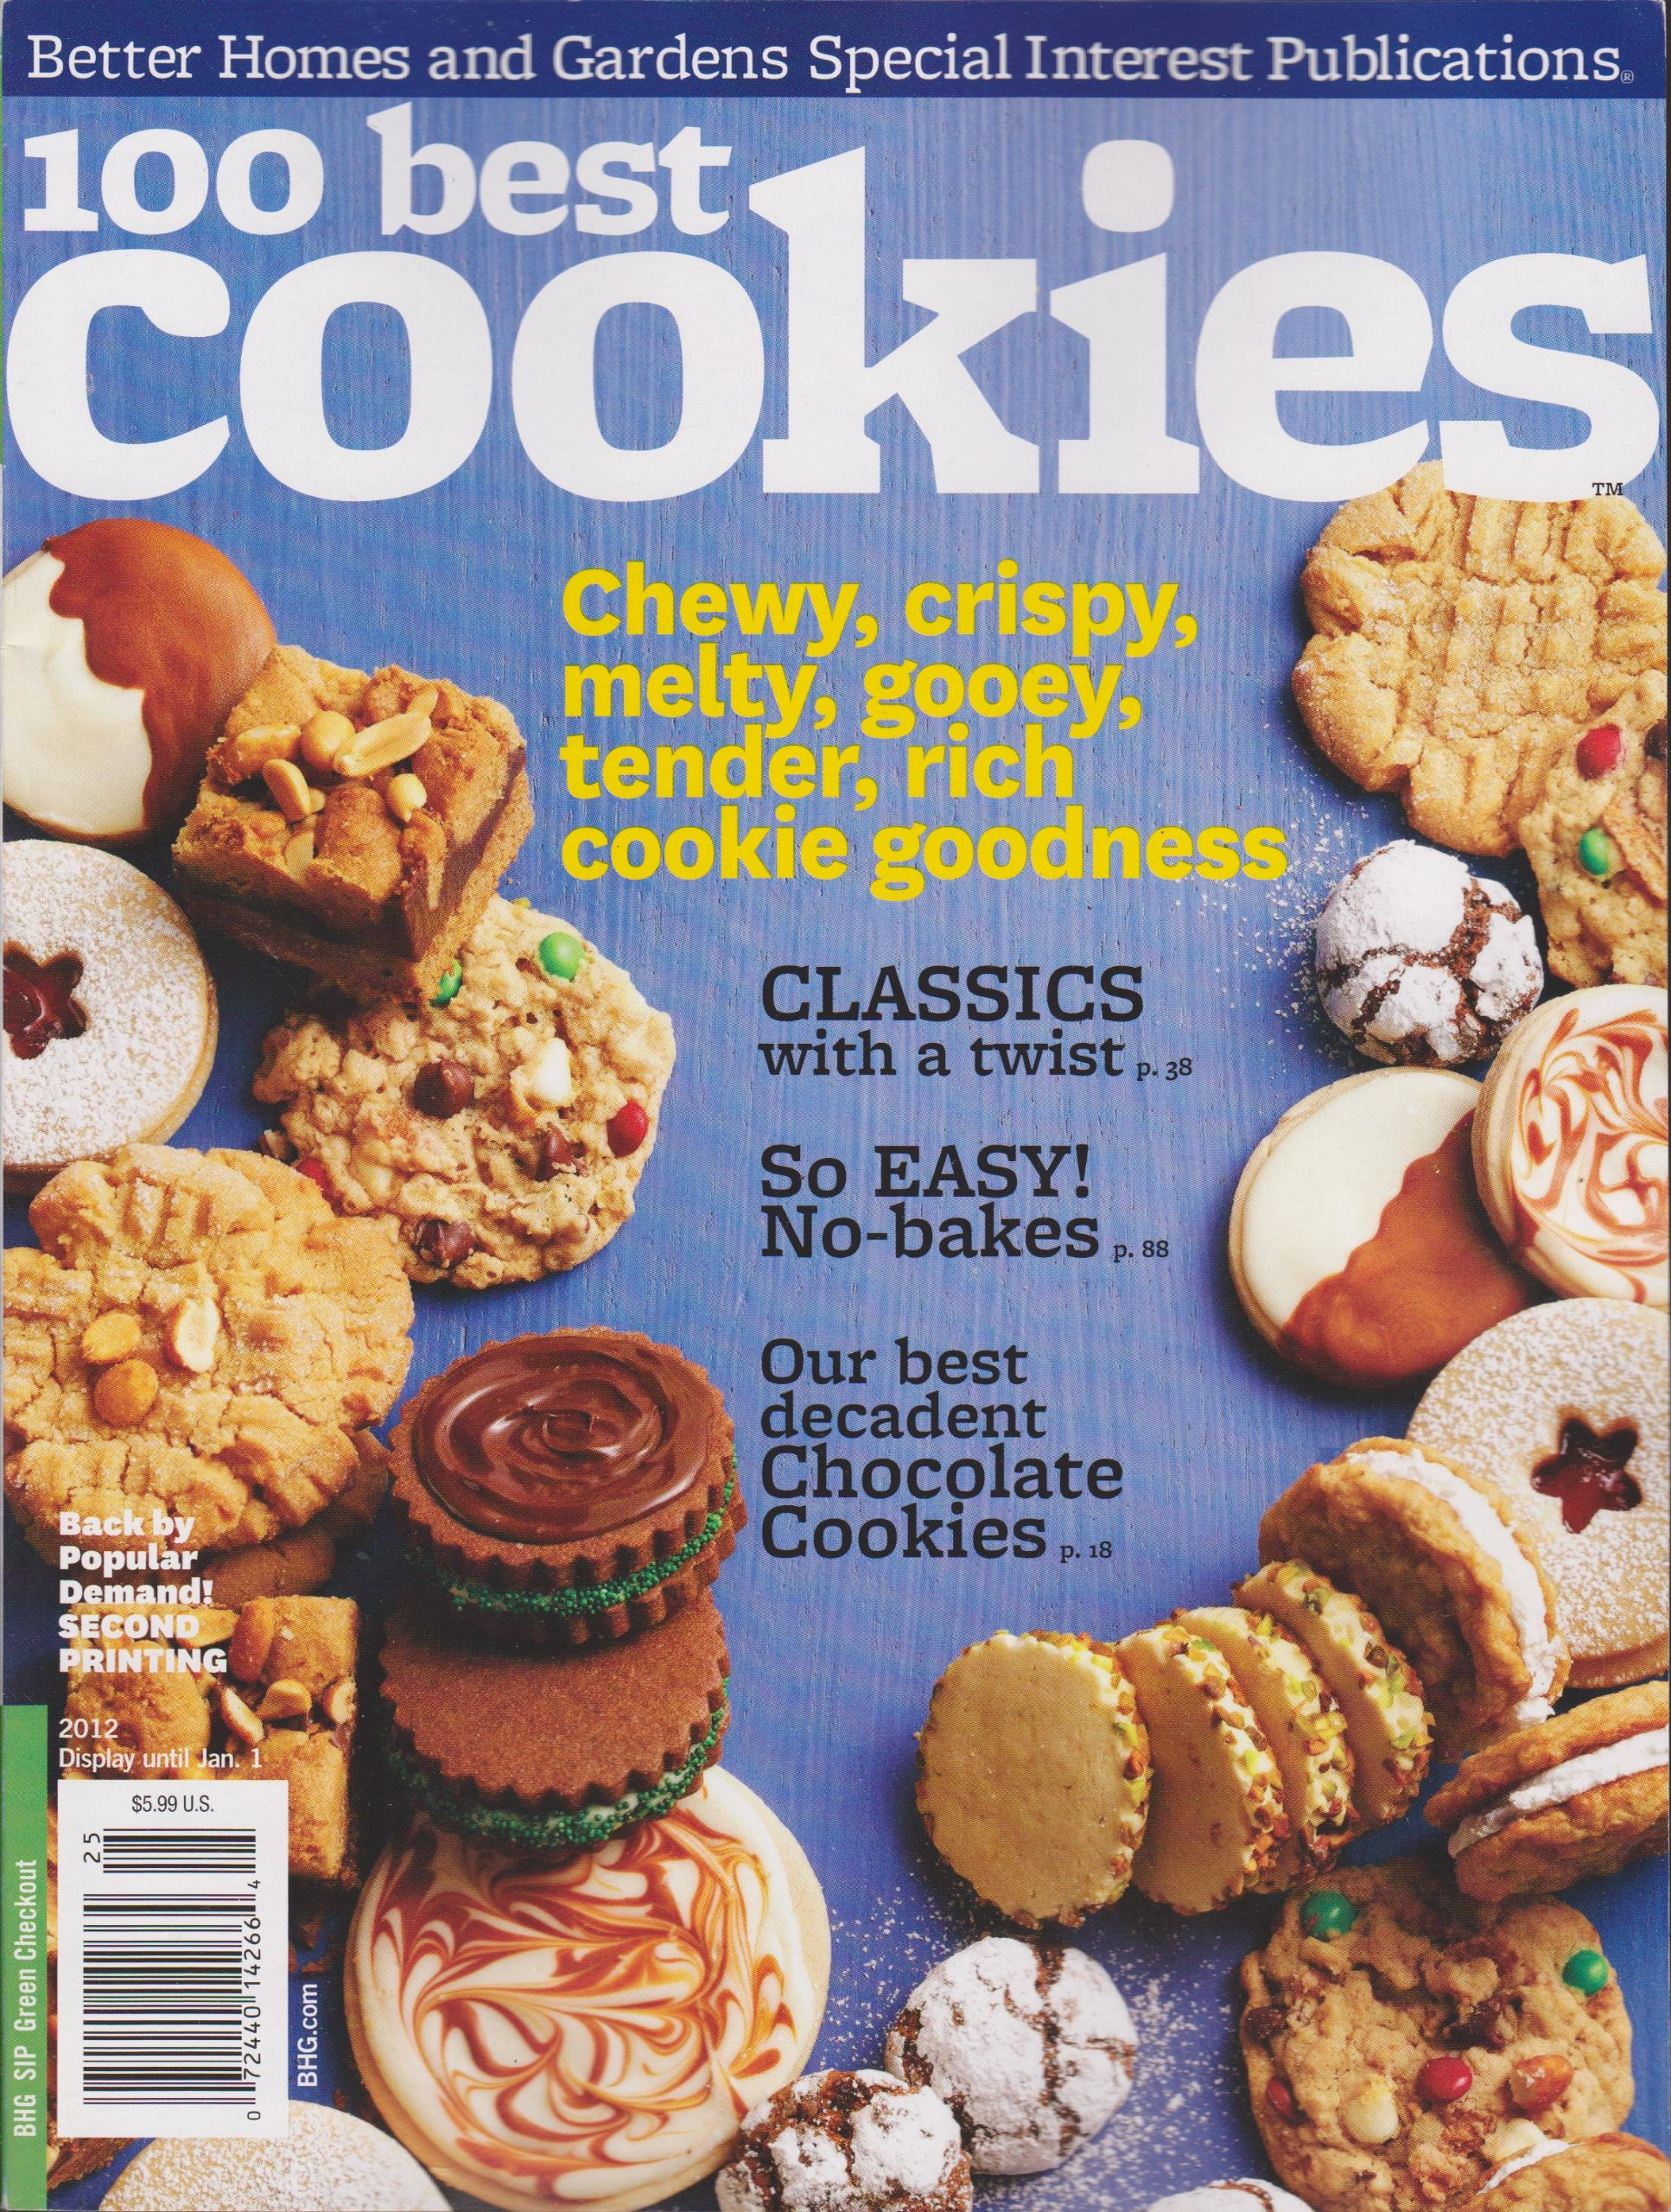 Better Homes And Gardens 100 Best Cookies Magazine 2012: Amazon.com: Books